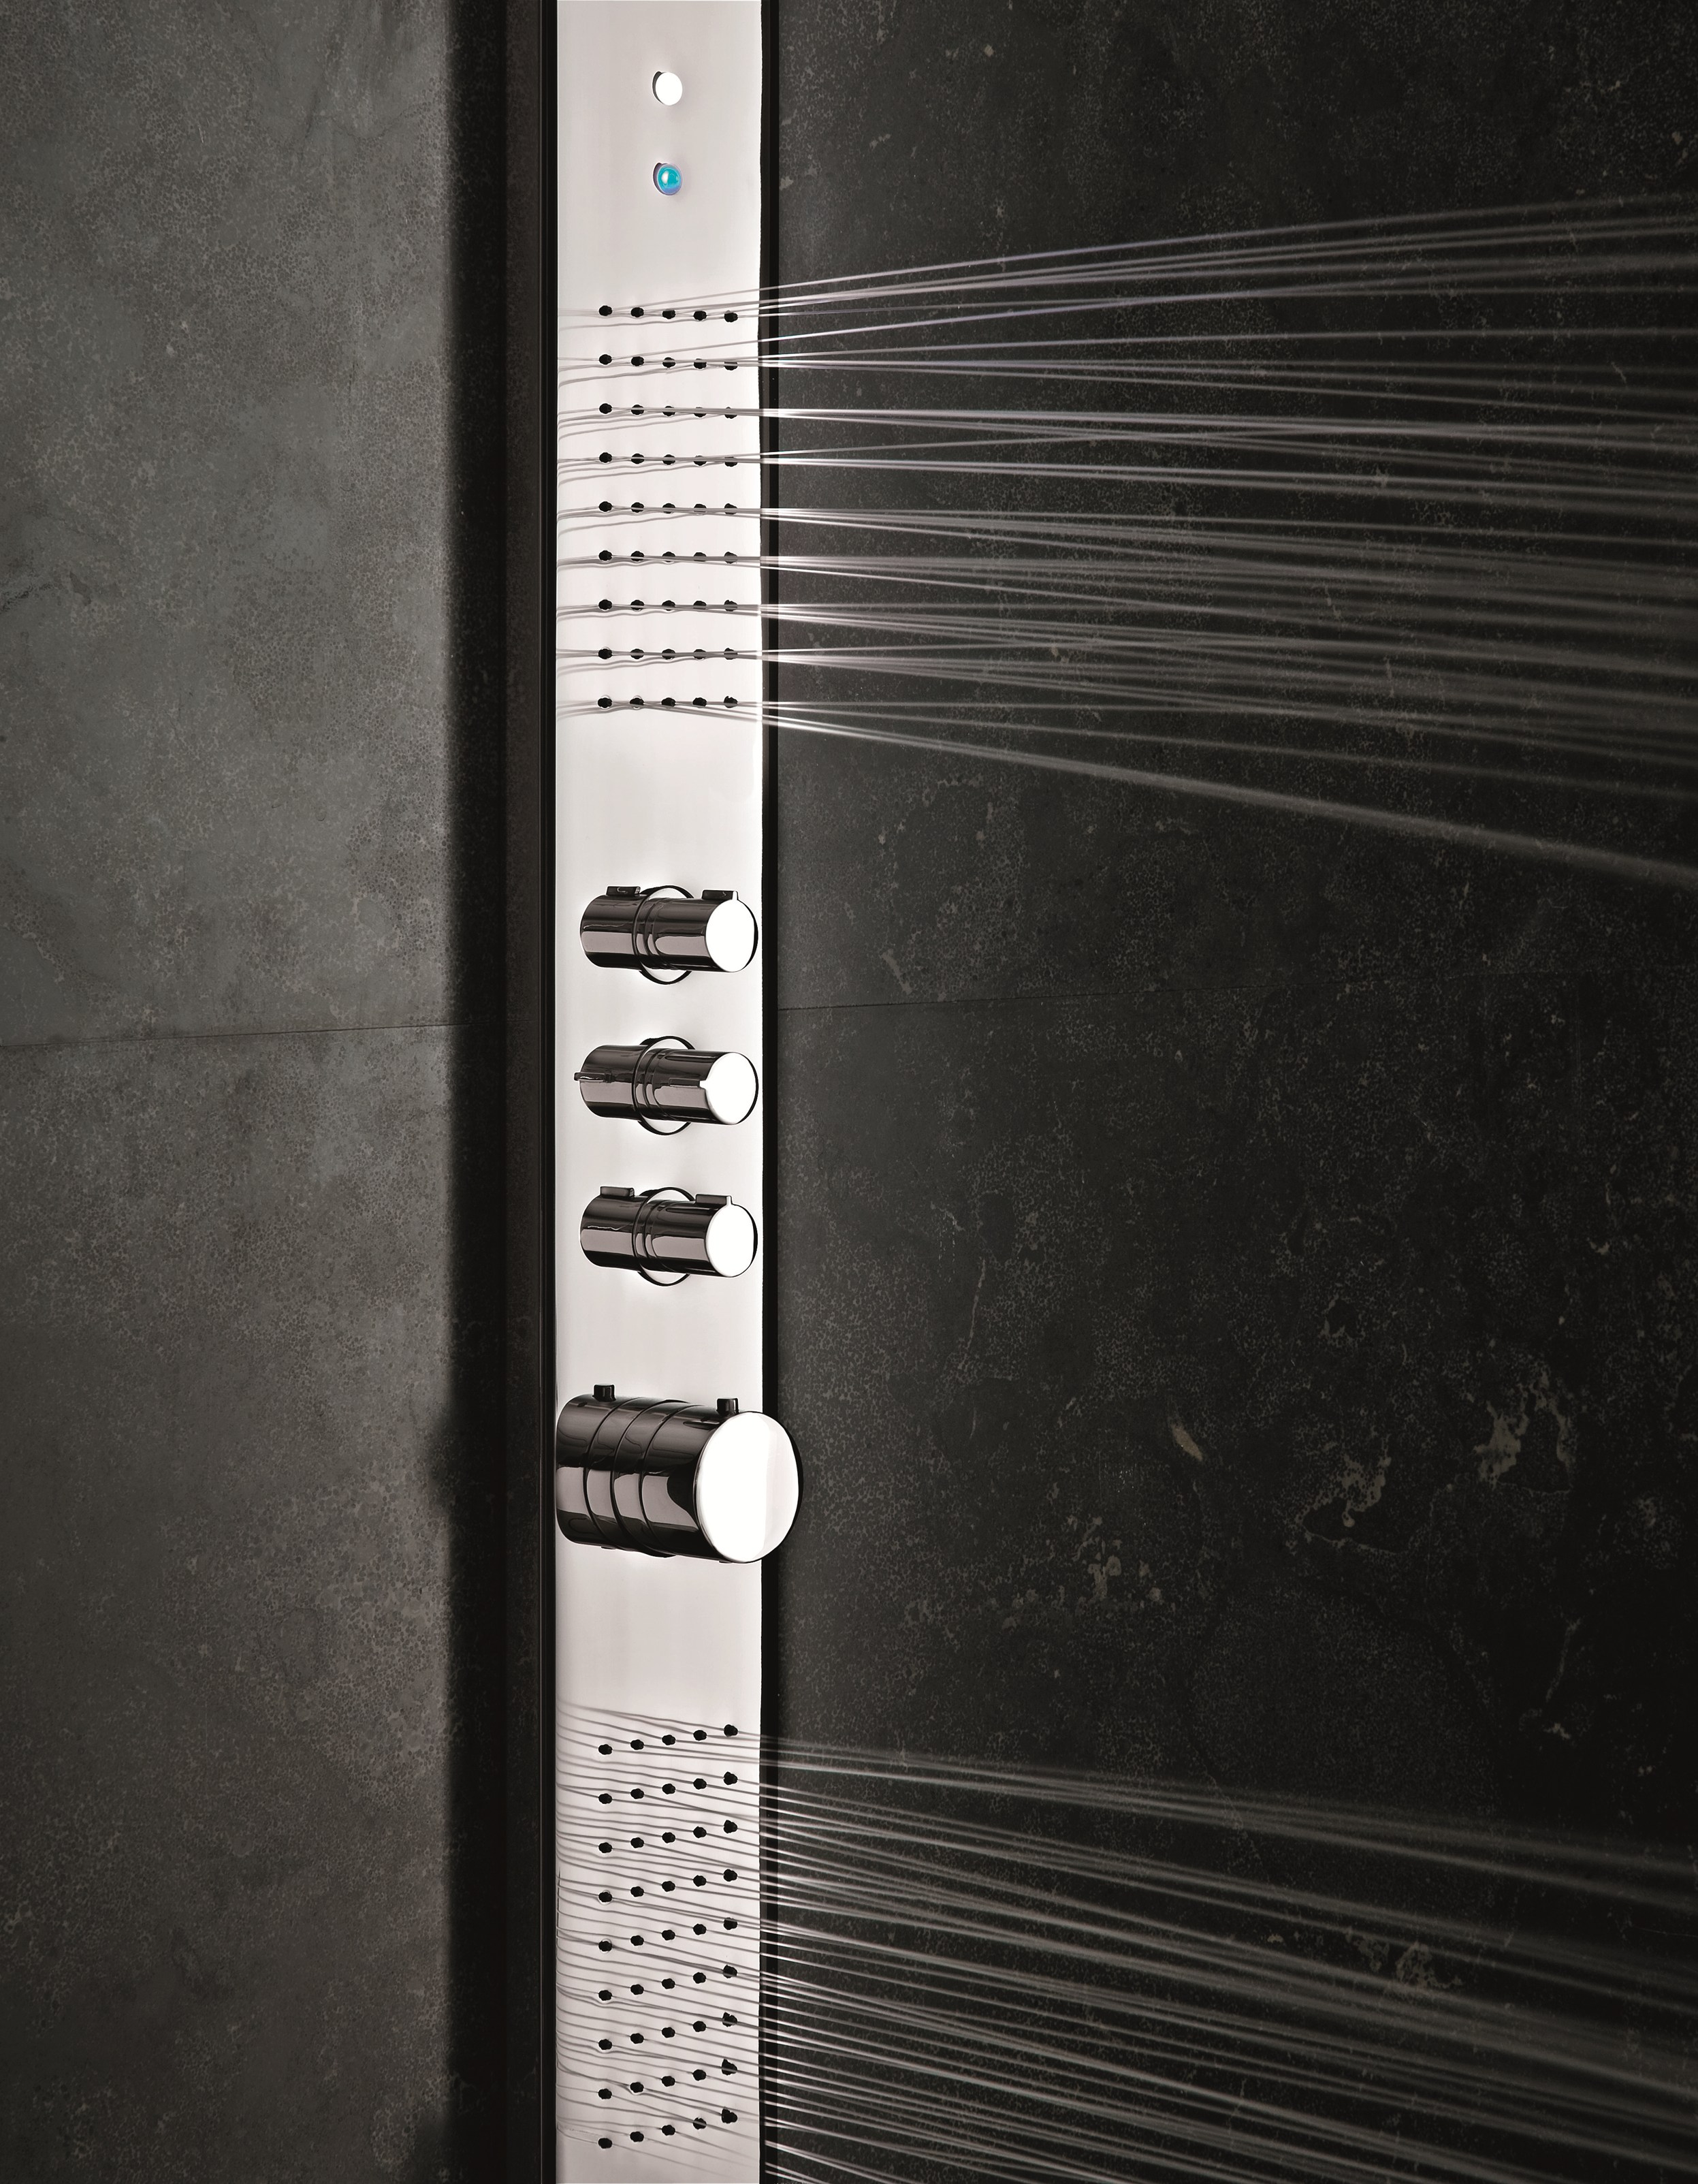 acquazzurra thermostatic shower panel by fantini rubinetti. Black Bedroom Furniture Sets. Home Design Ideas